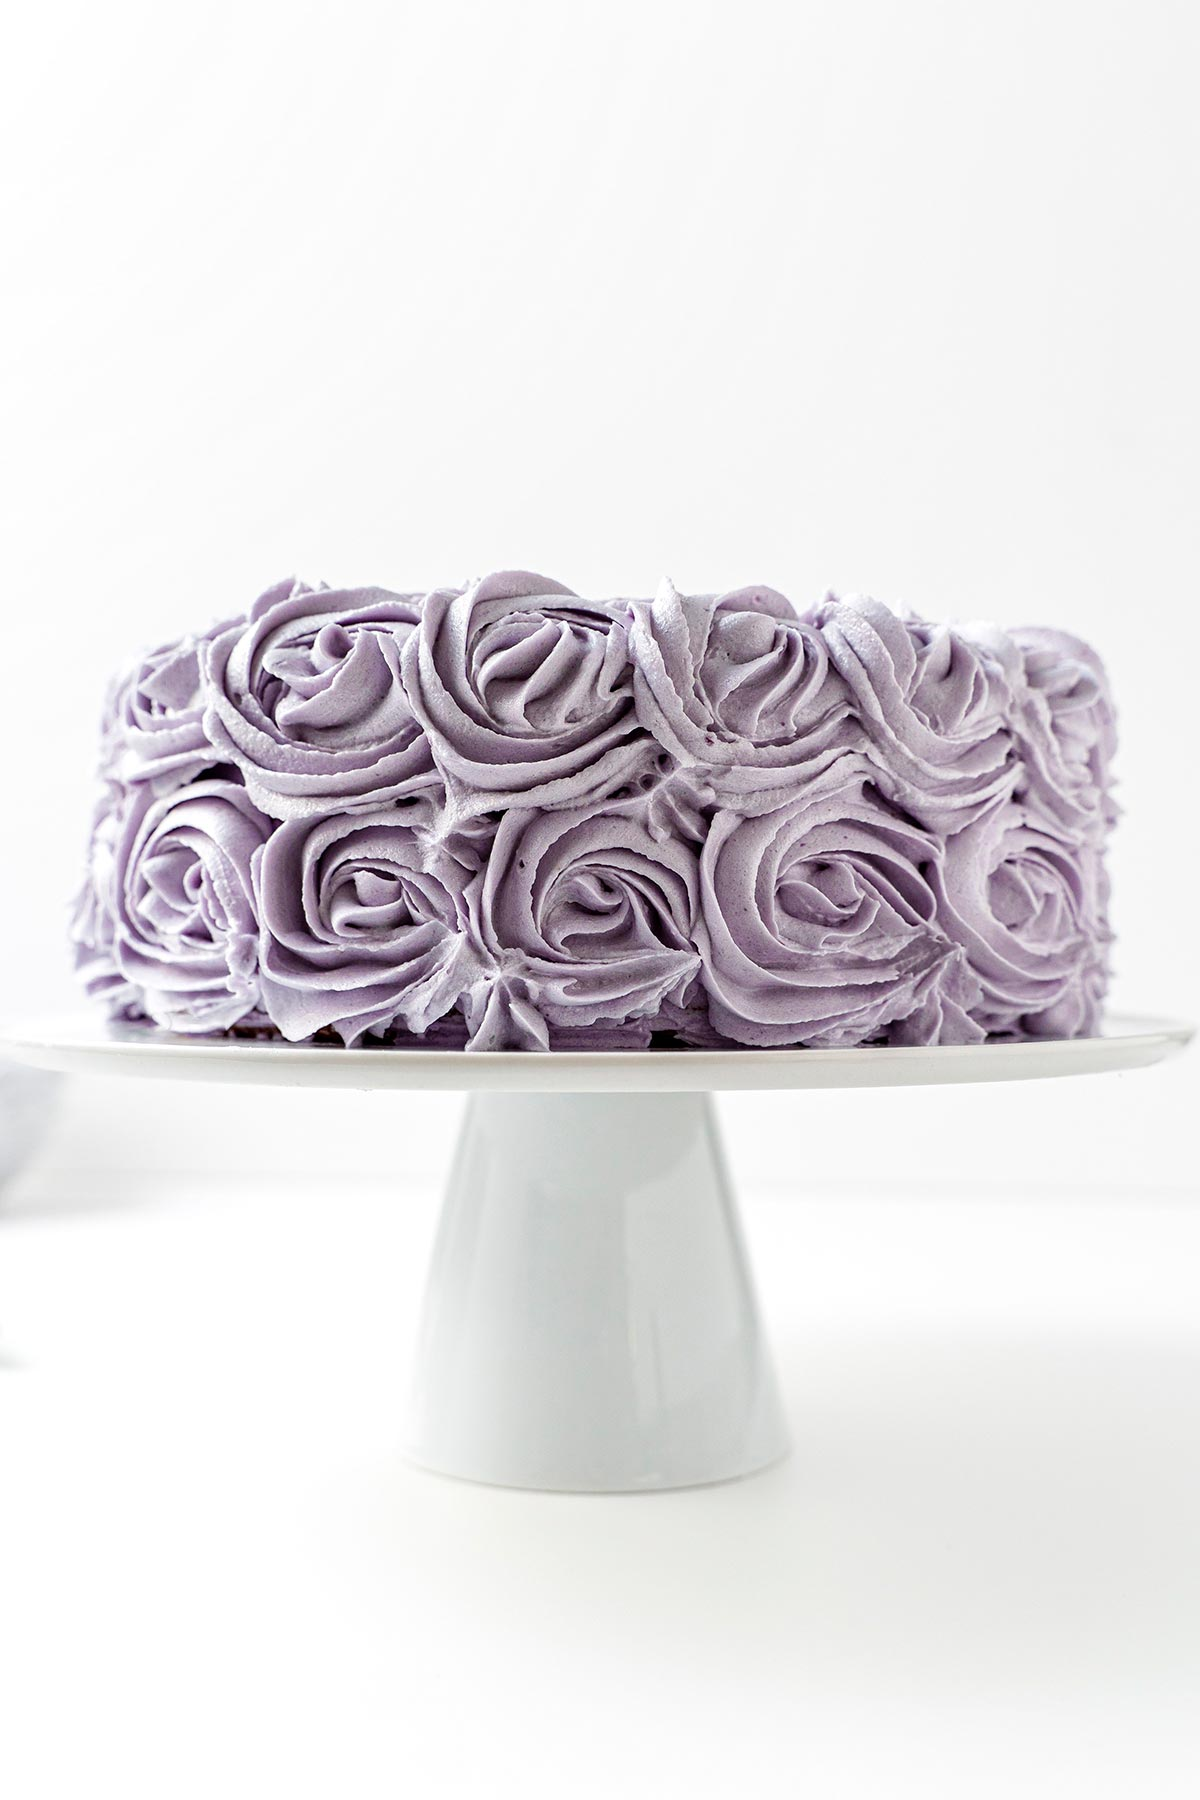 Ube Halaya Cake with purple frosting roses on white cake stand